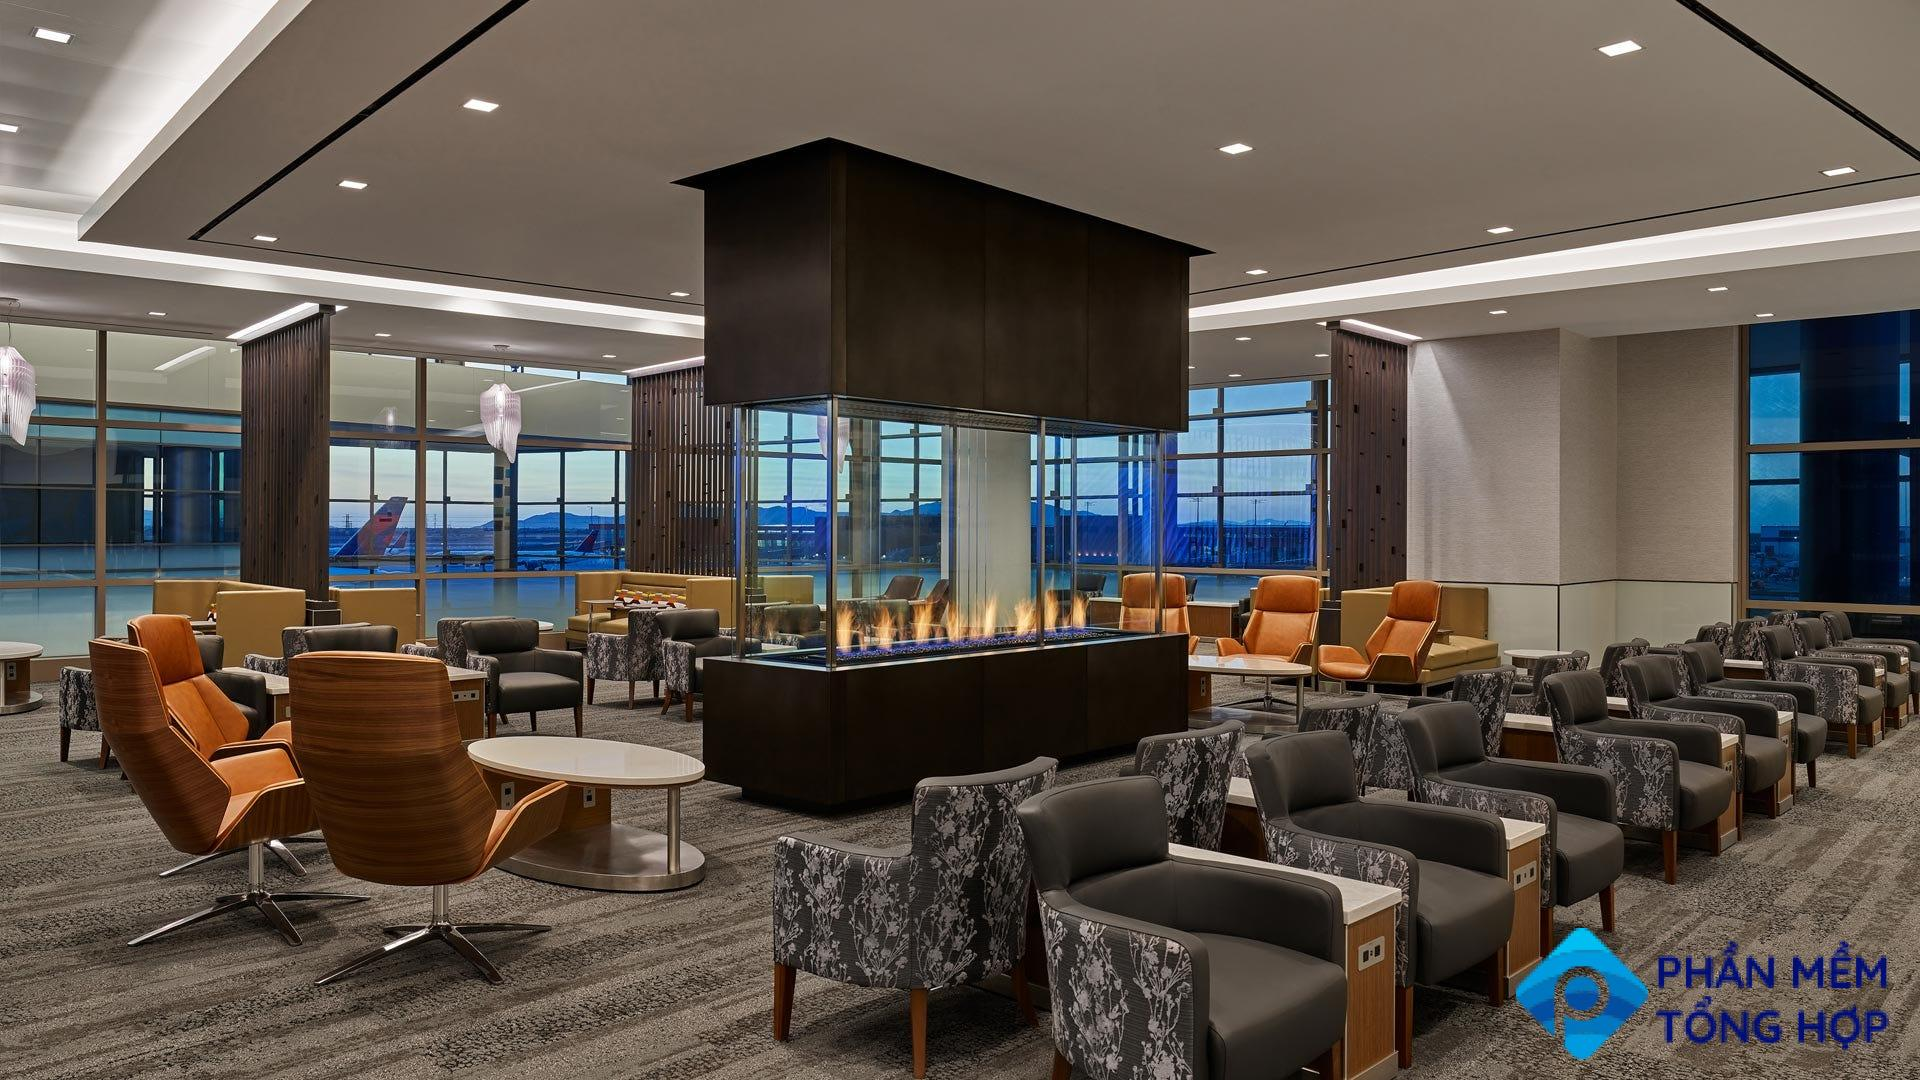 A well appointed airport lounge with comfortable seating and a fireplace.